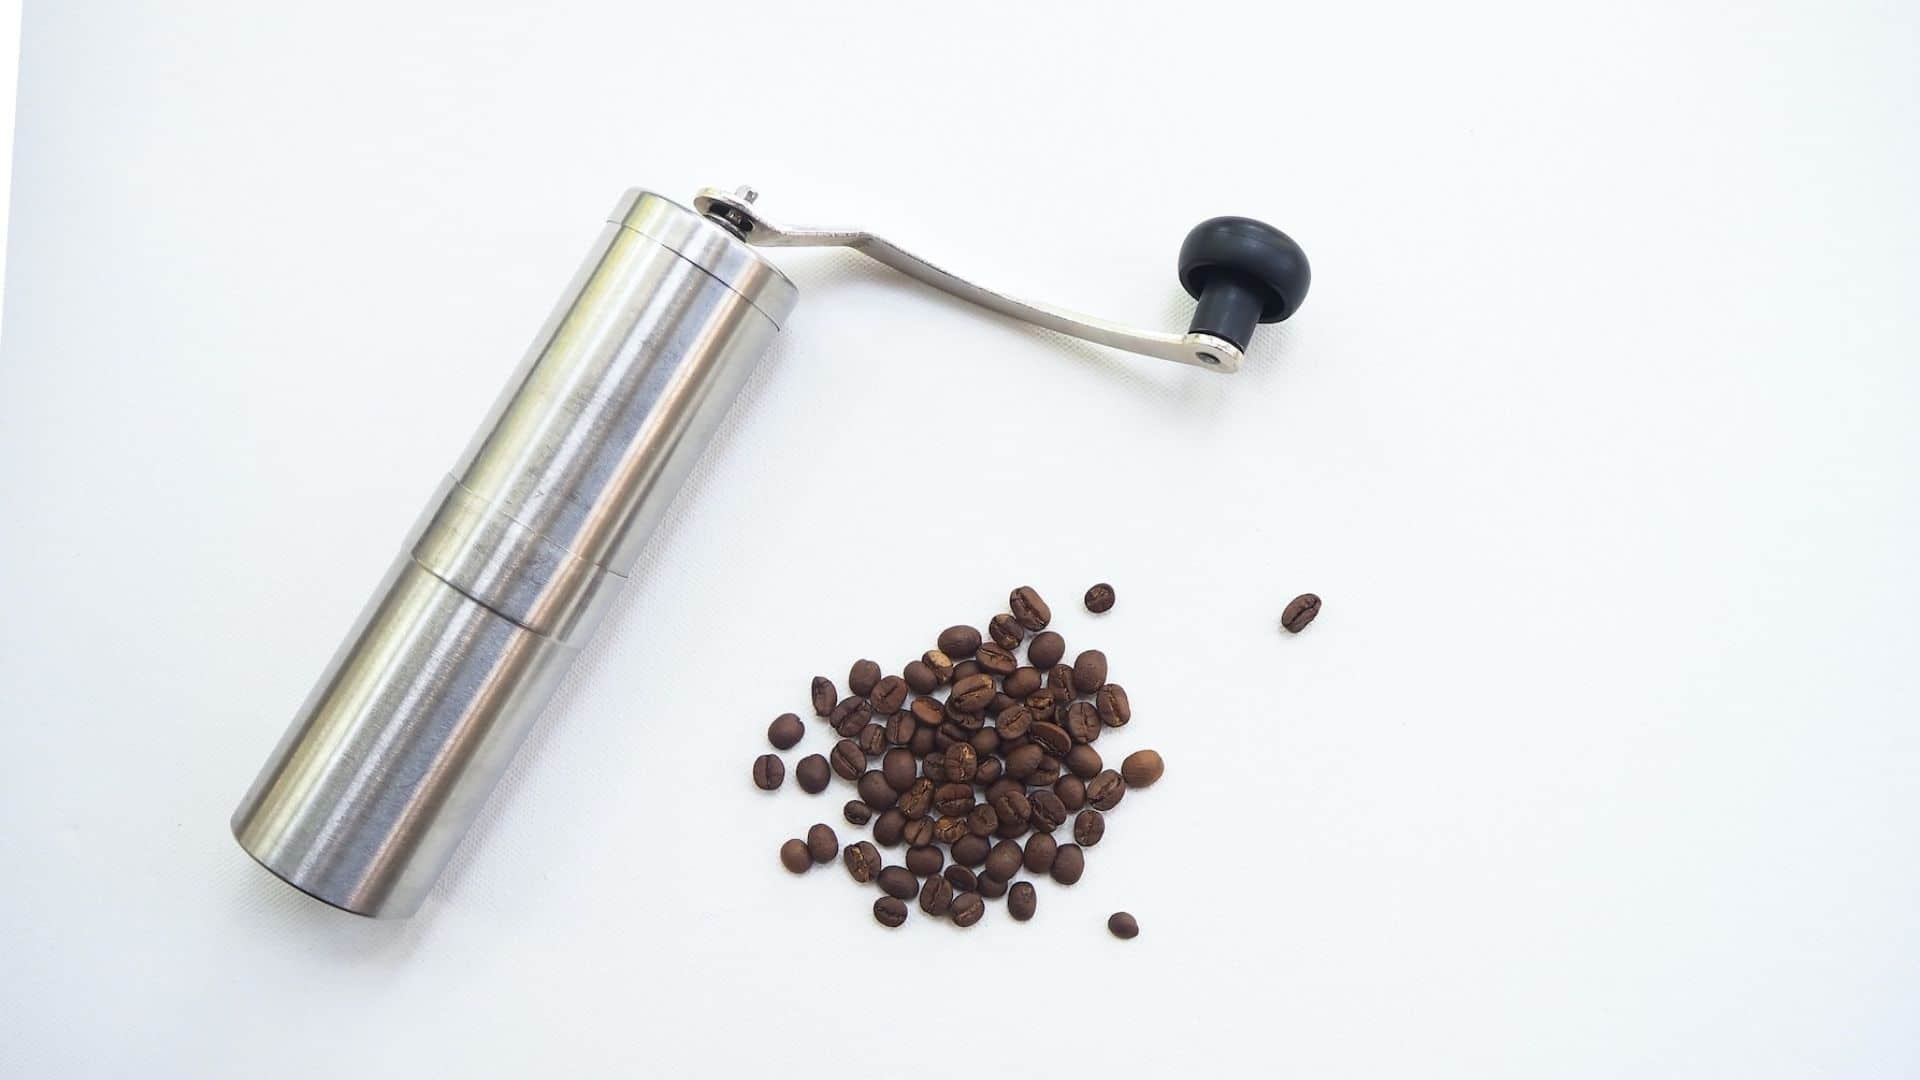 Best Hand Coffee Grinder On The Market